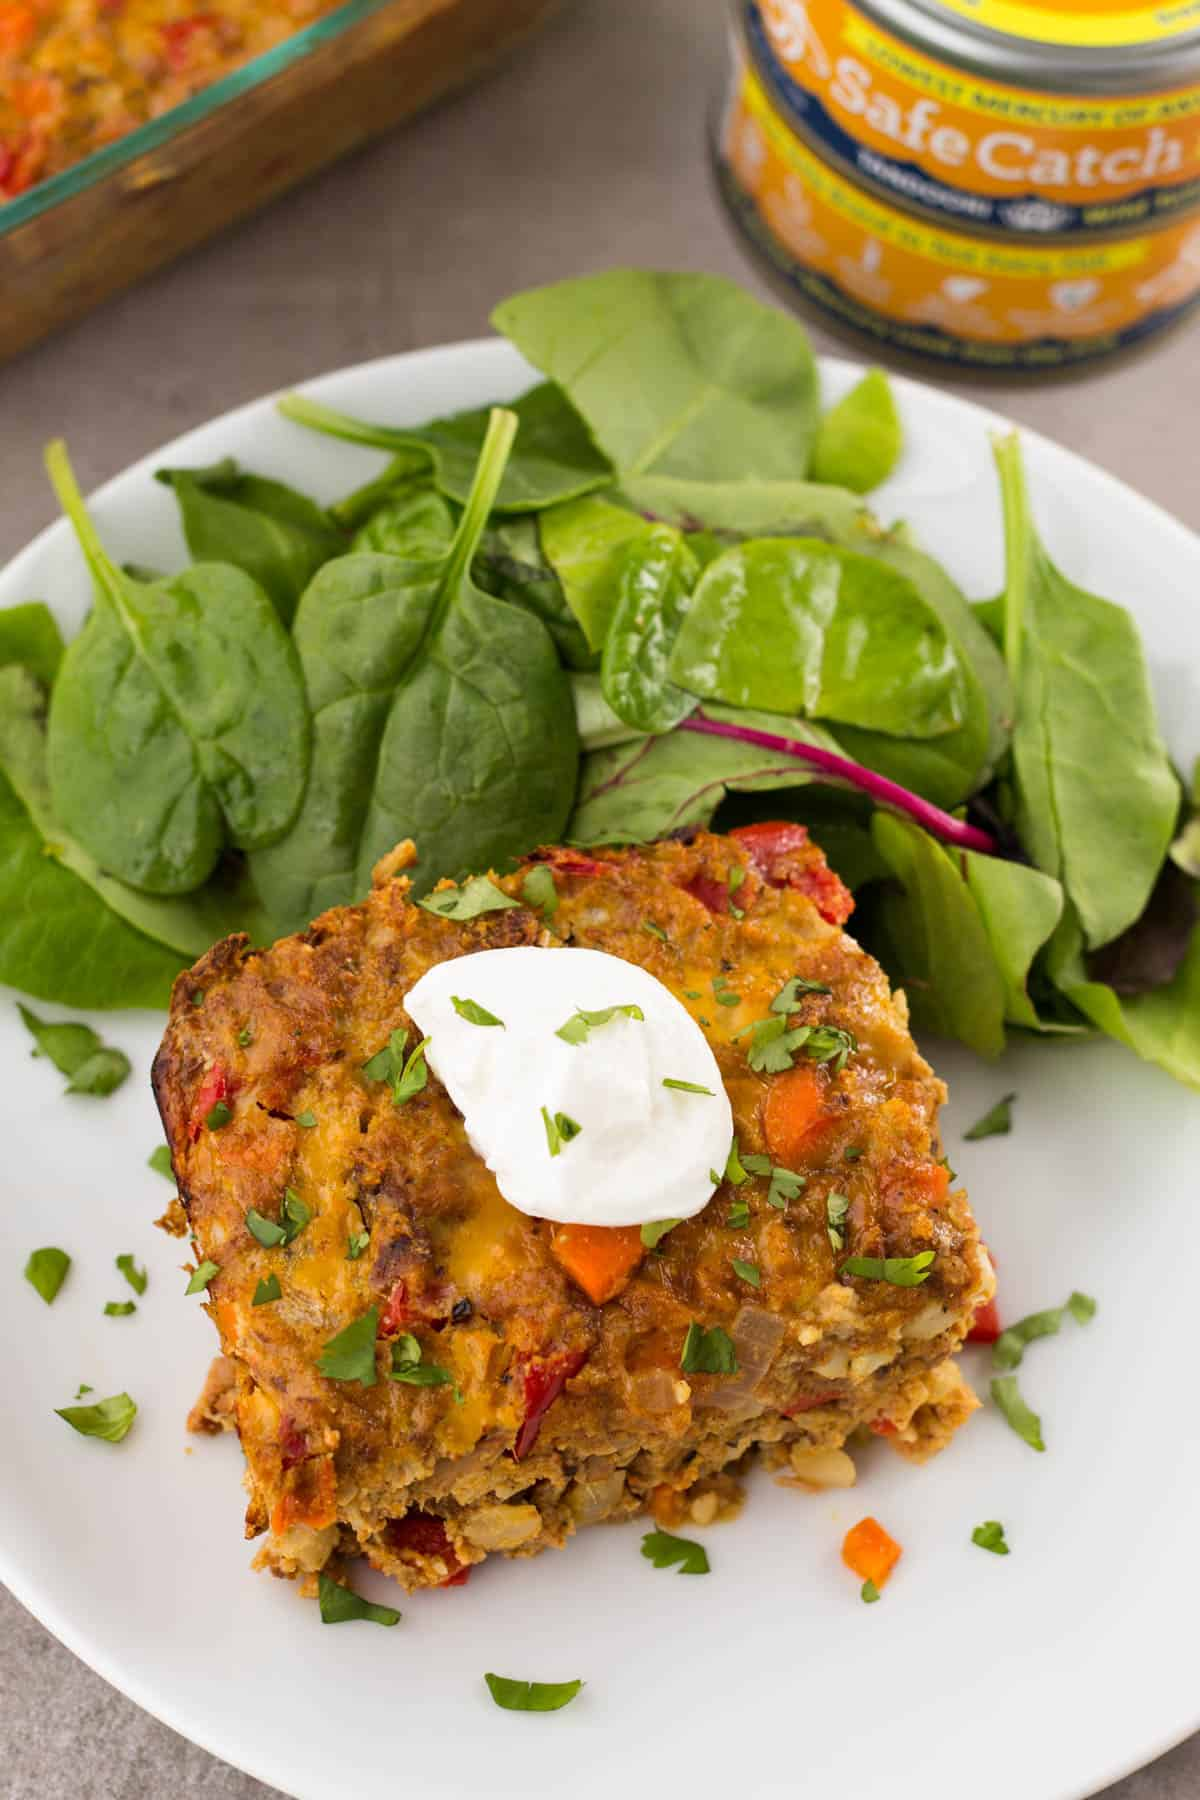 This Tandoori Tuna Casserole packs the flavor and makes an easy and healthy weeknight or meal prep dish that is gluten free, paleo, and Whole30 approved! - Eat the Gains